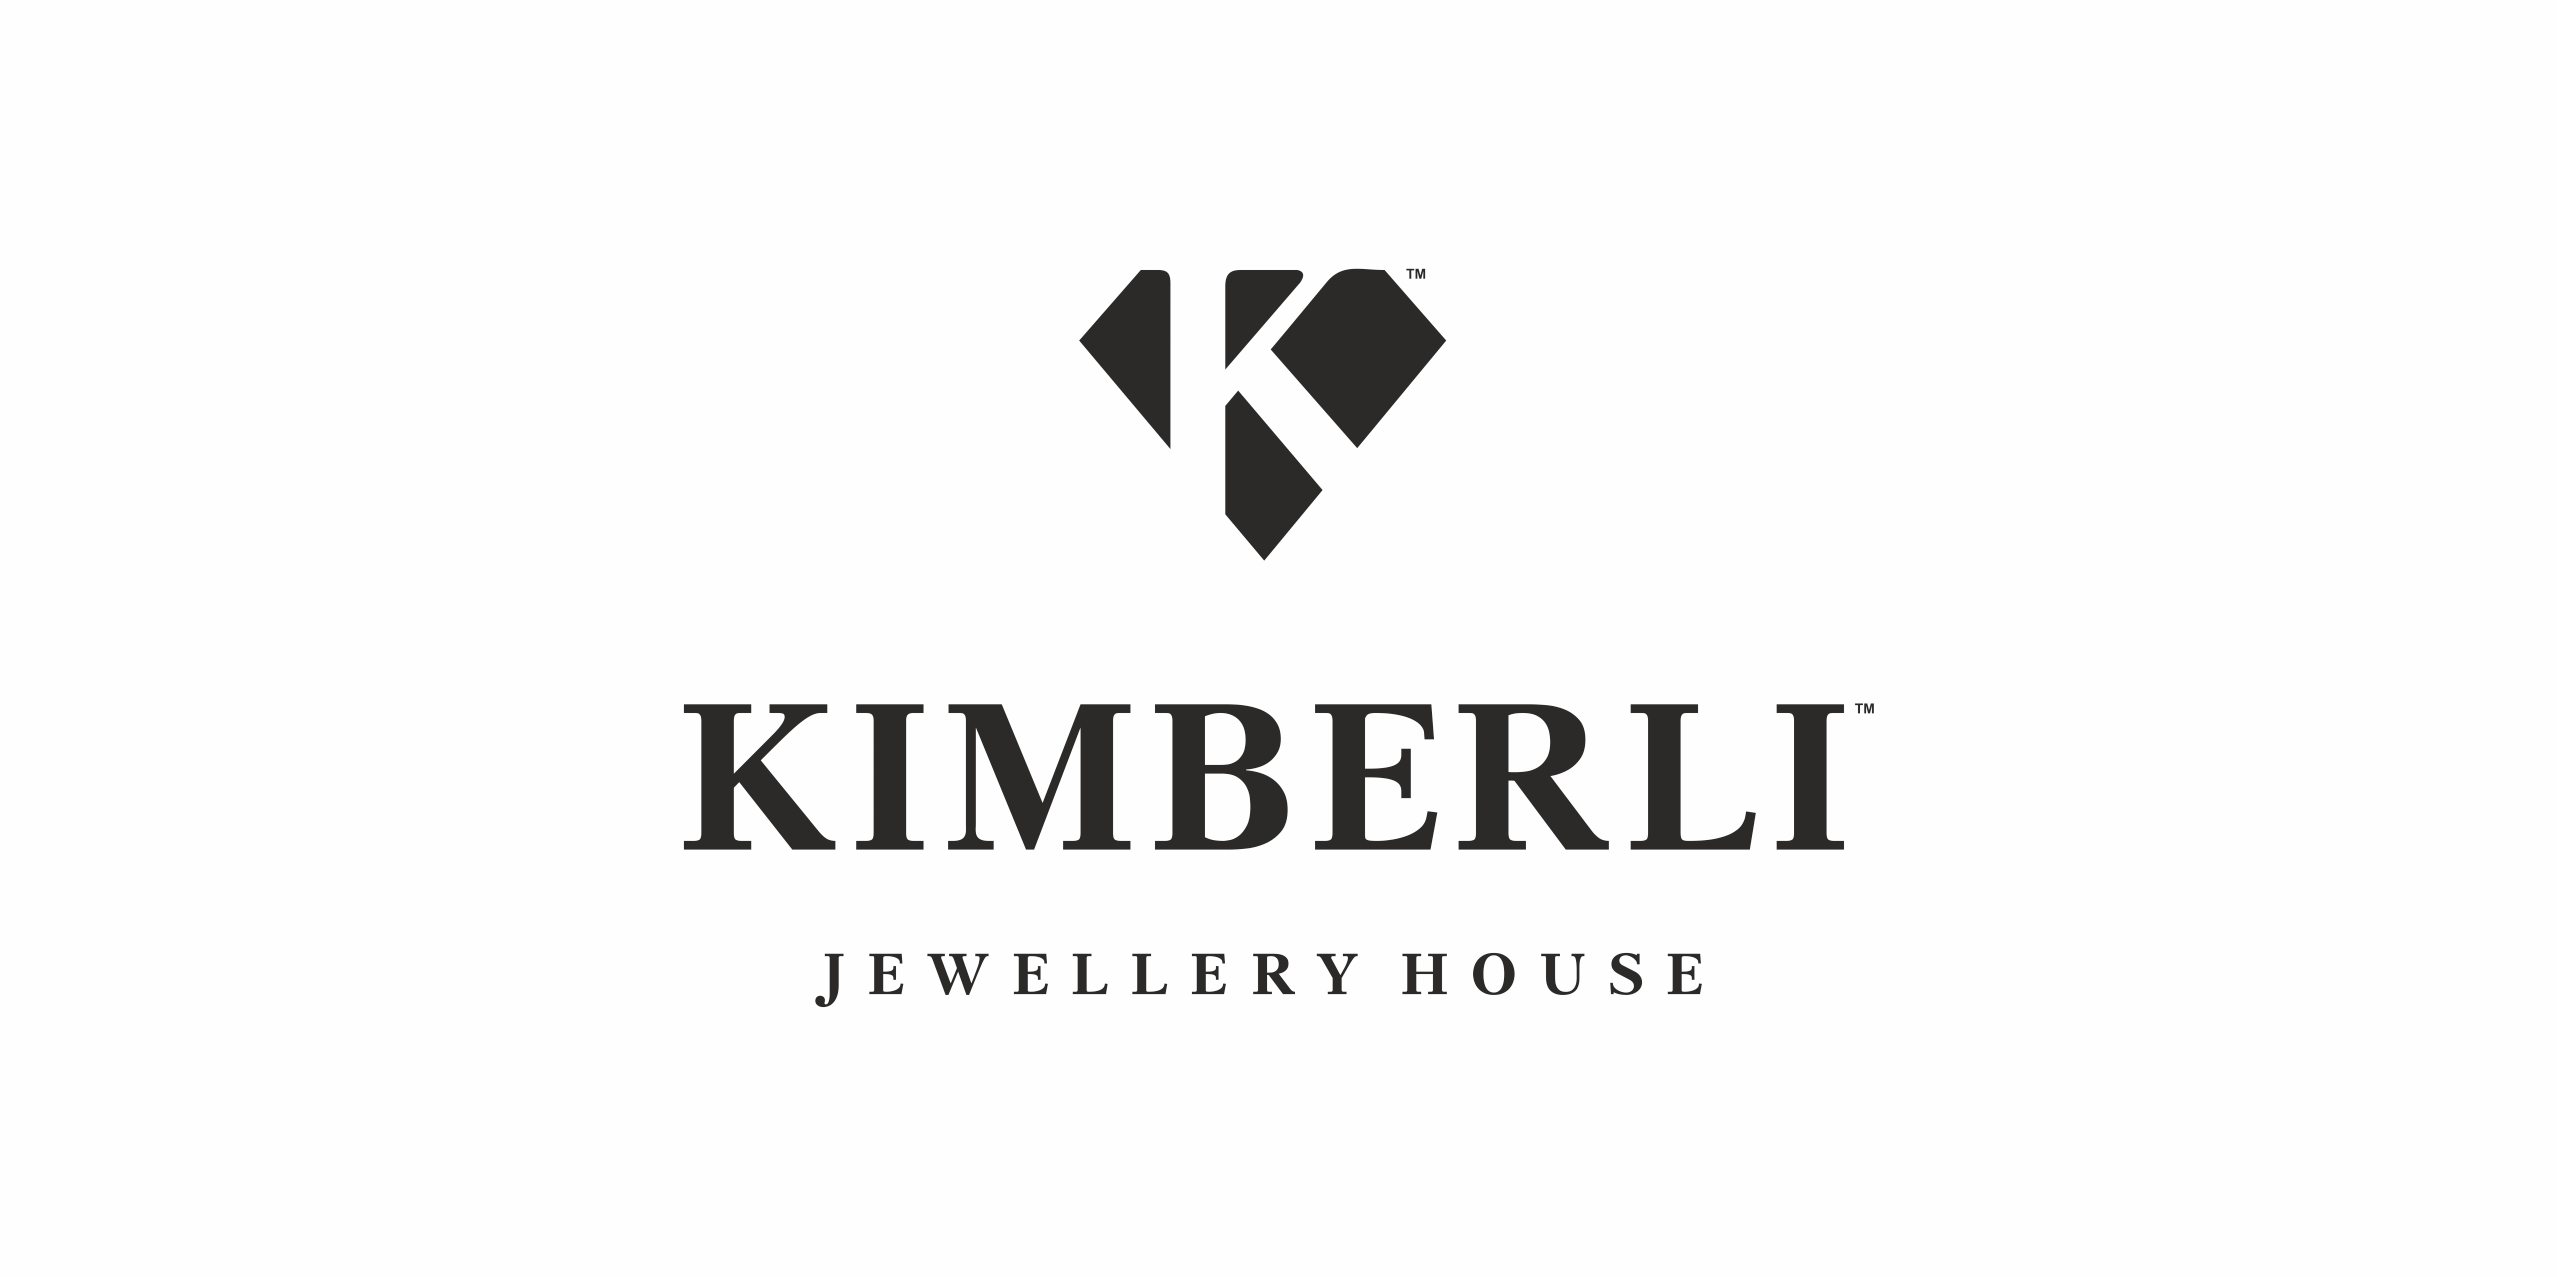 Kimberli jewellery house